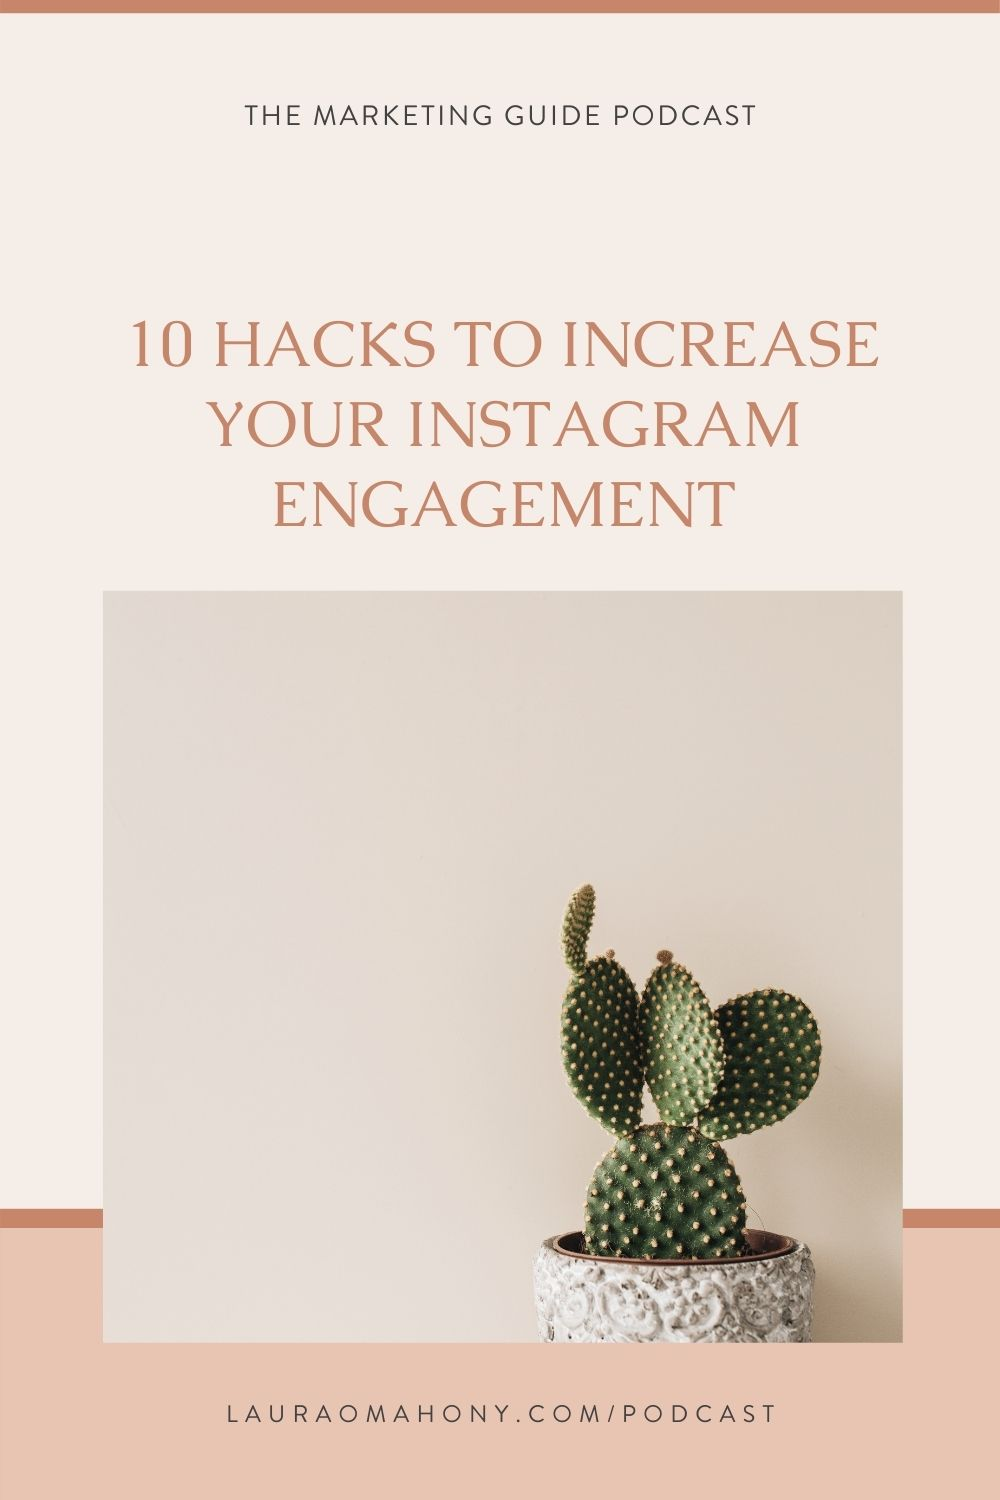 Episode 22 - 10 Hacks to Increase your Instagram Engagement